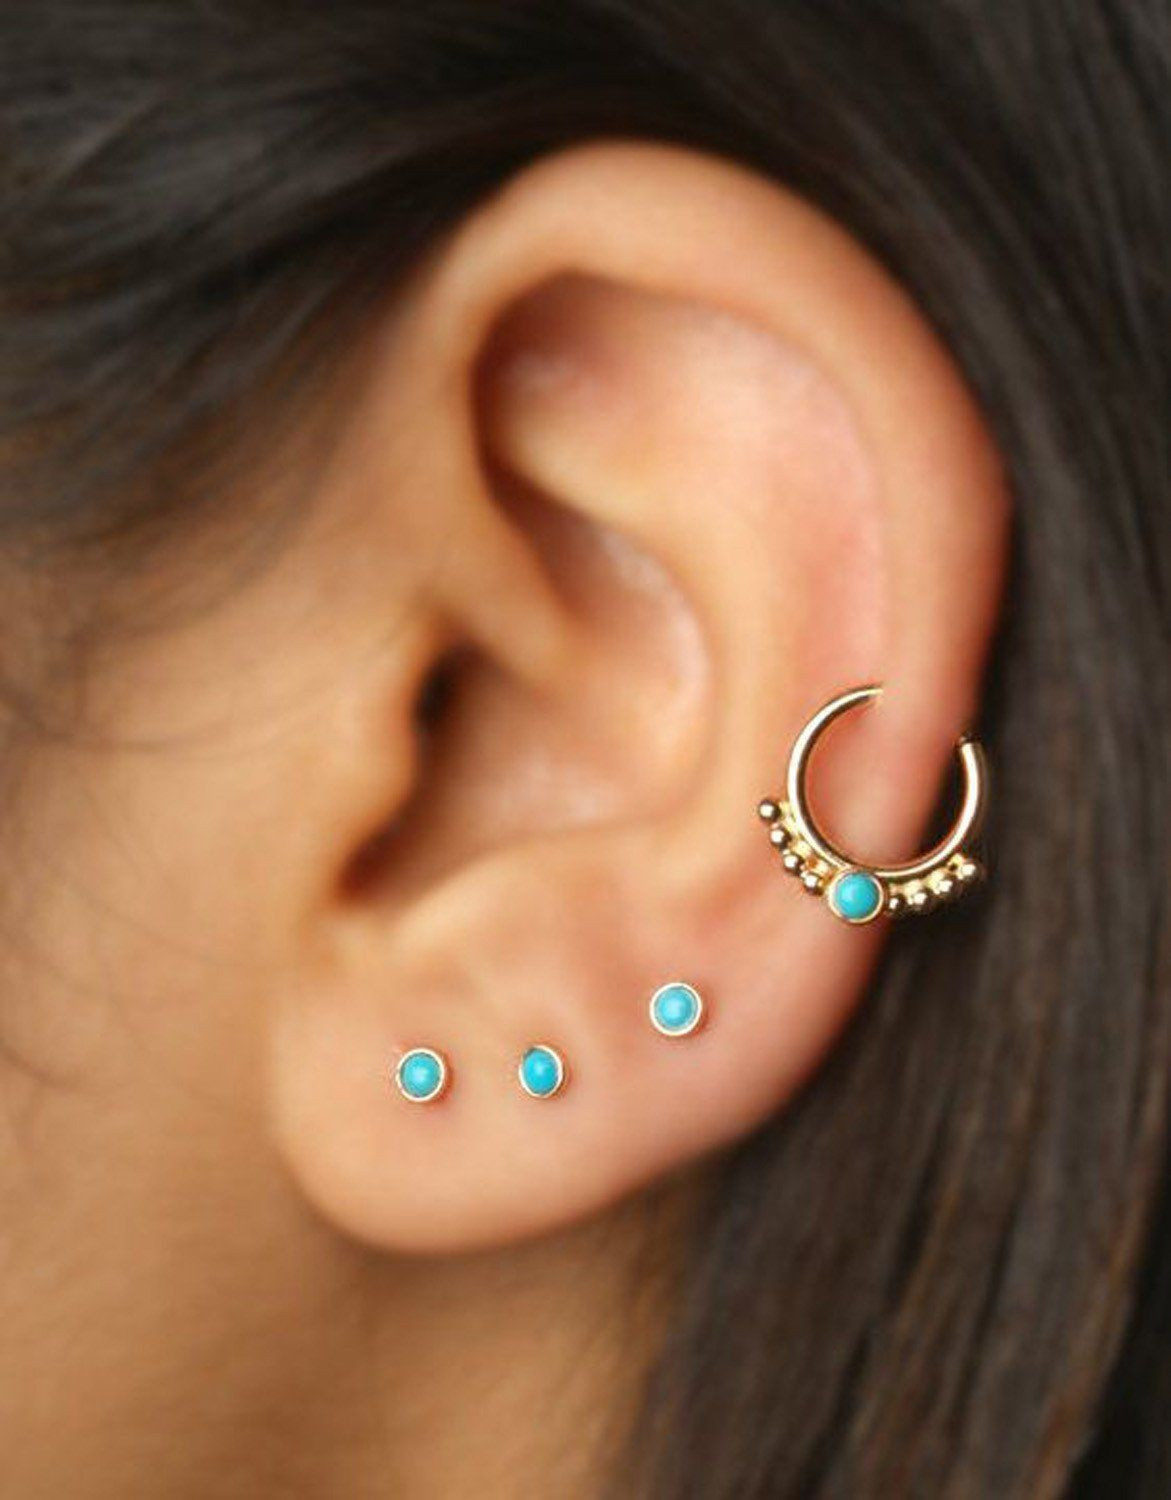 Steal These 30 Ear Piercing Ideas (With images) | Helix ...